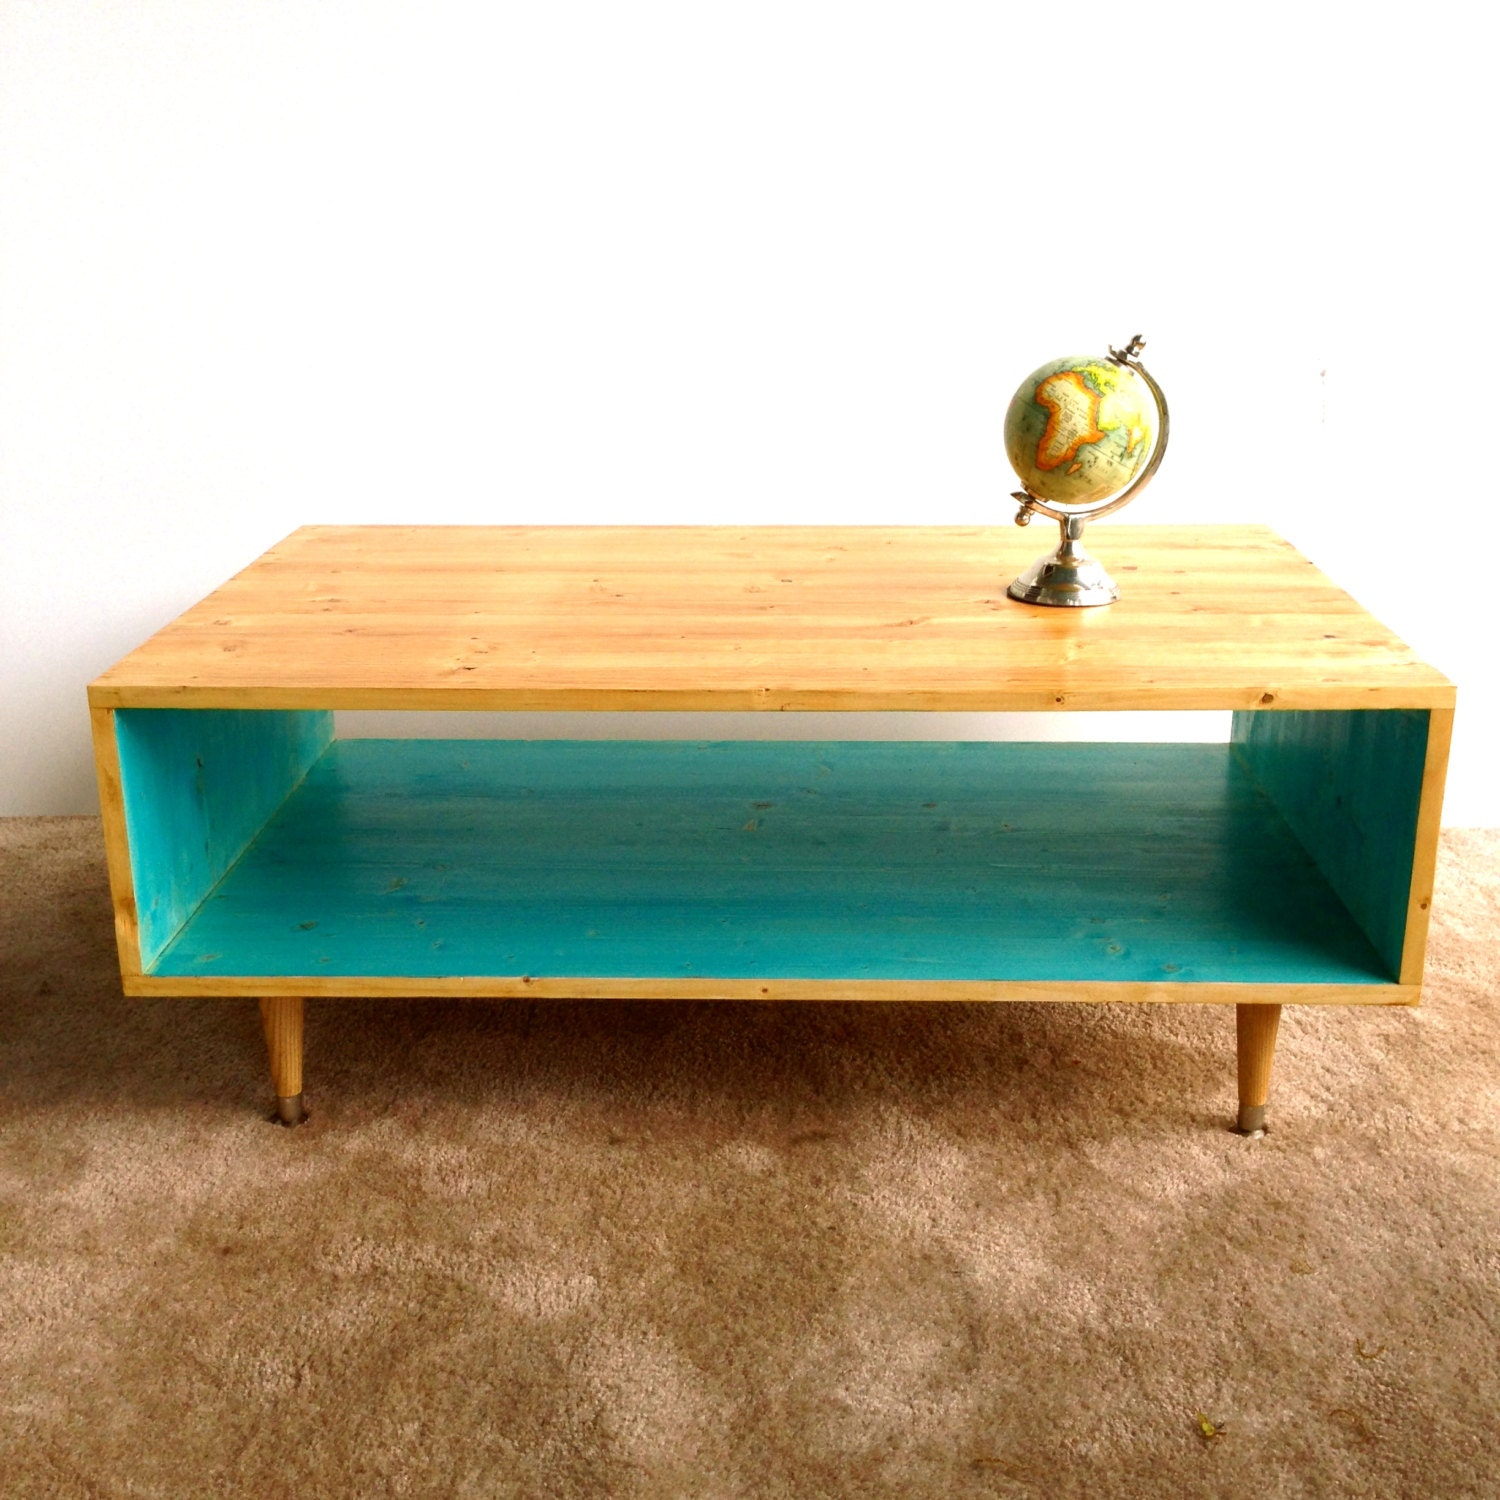 Mid Century Modern Coffee Table With Planter: Handmade Coffee Table Mid Century Modern Turquoise Or Custom